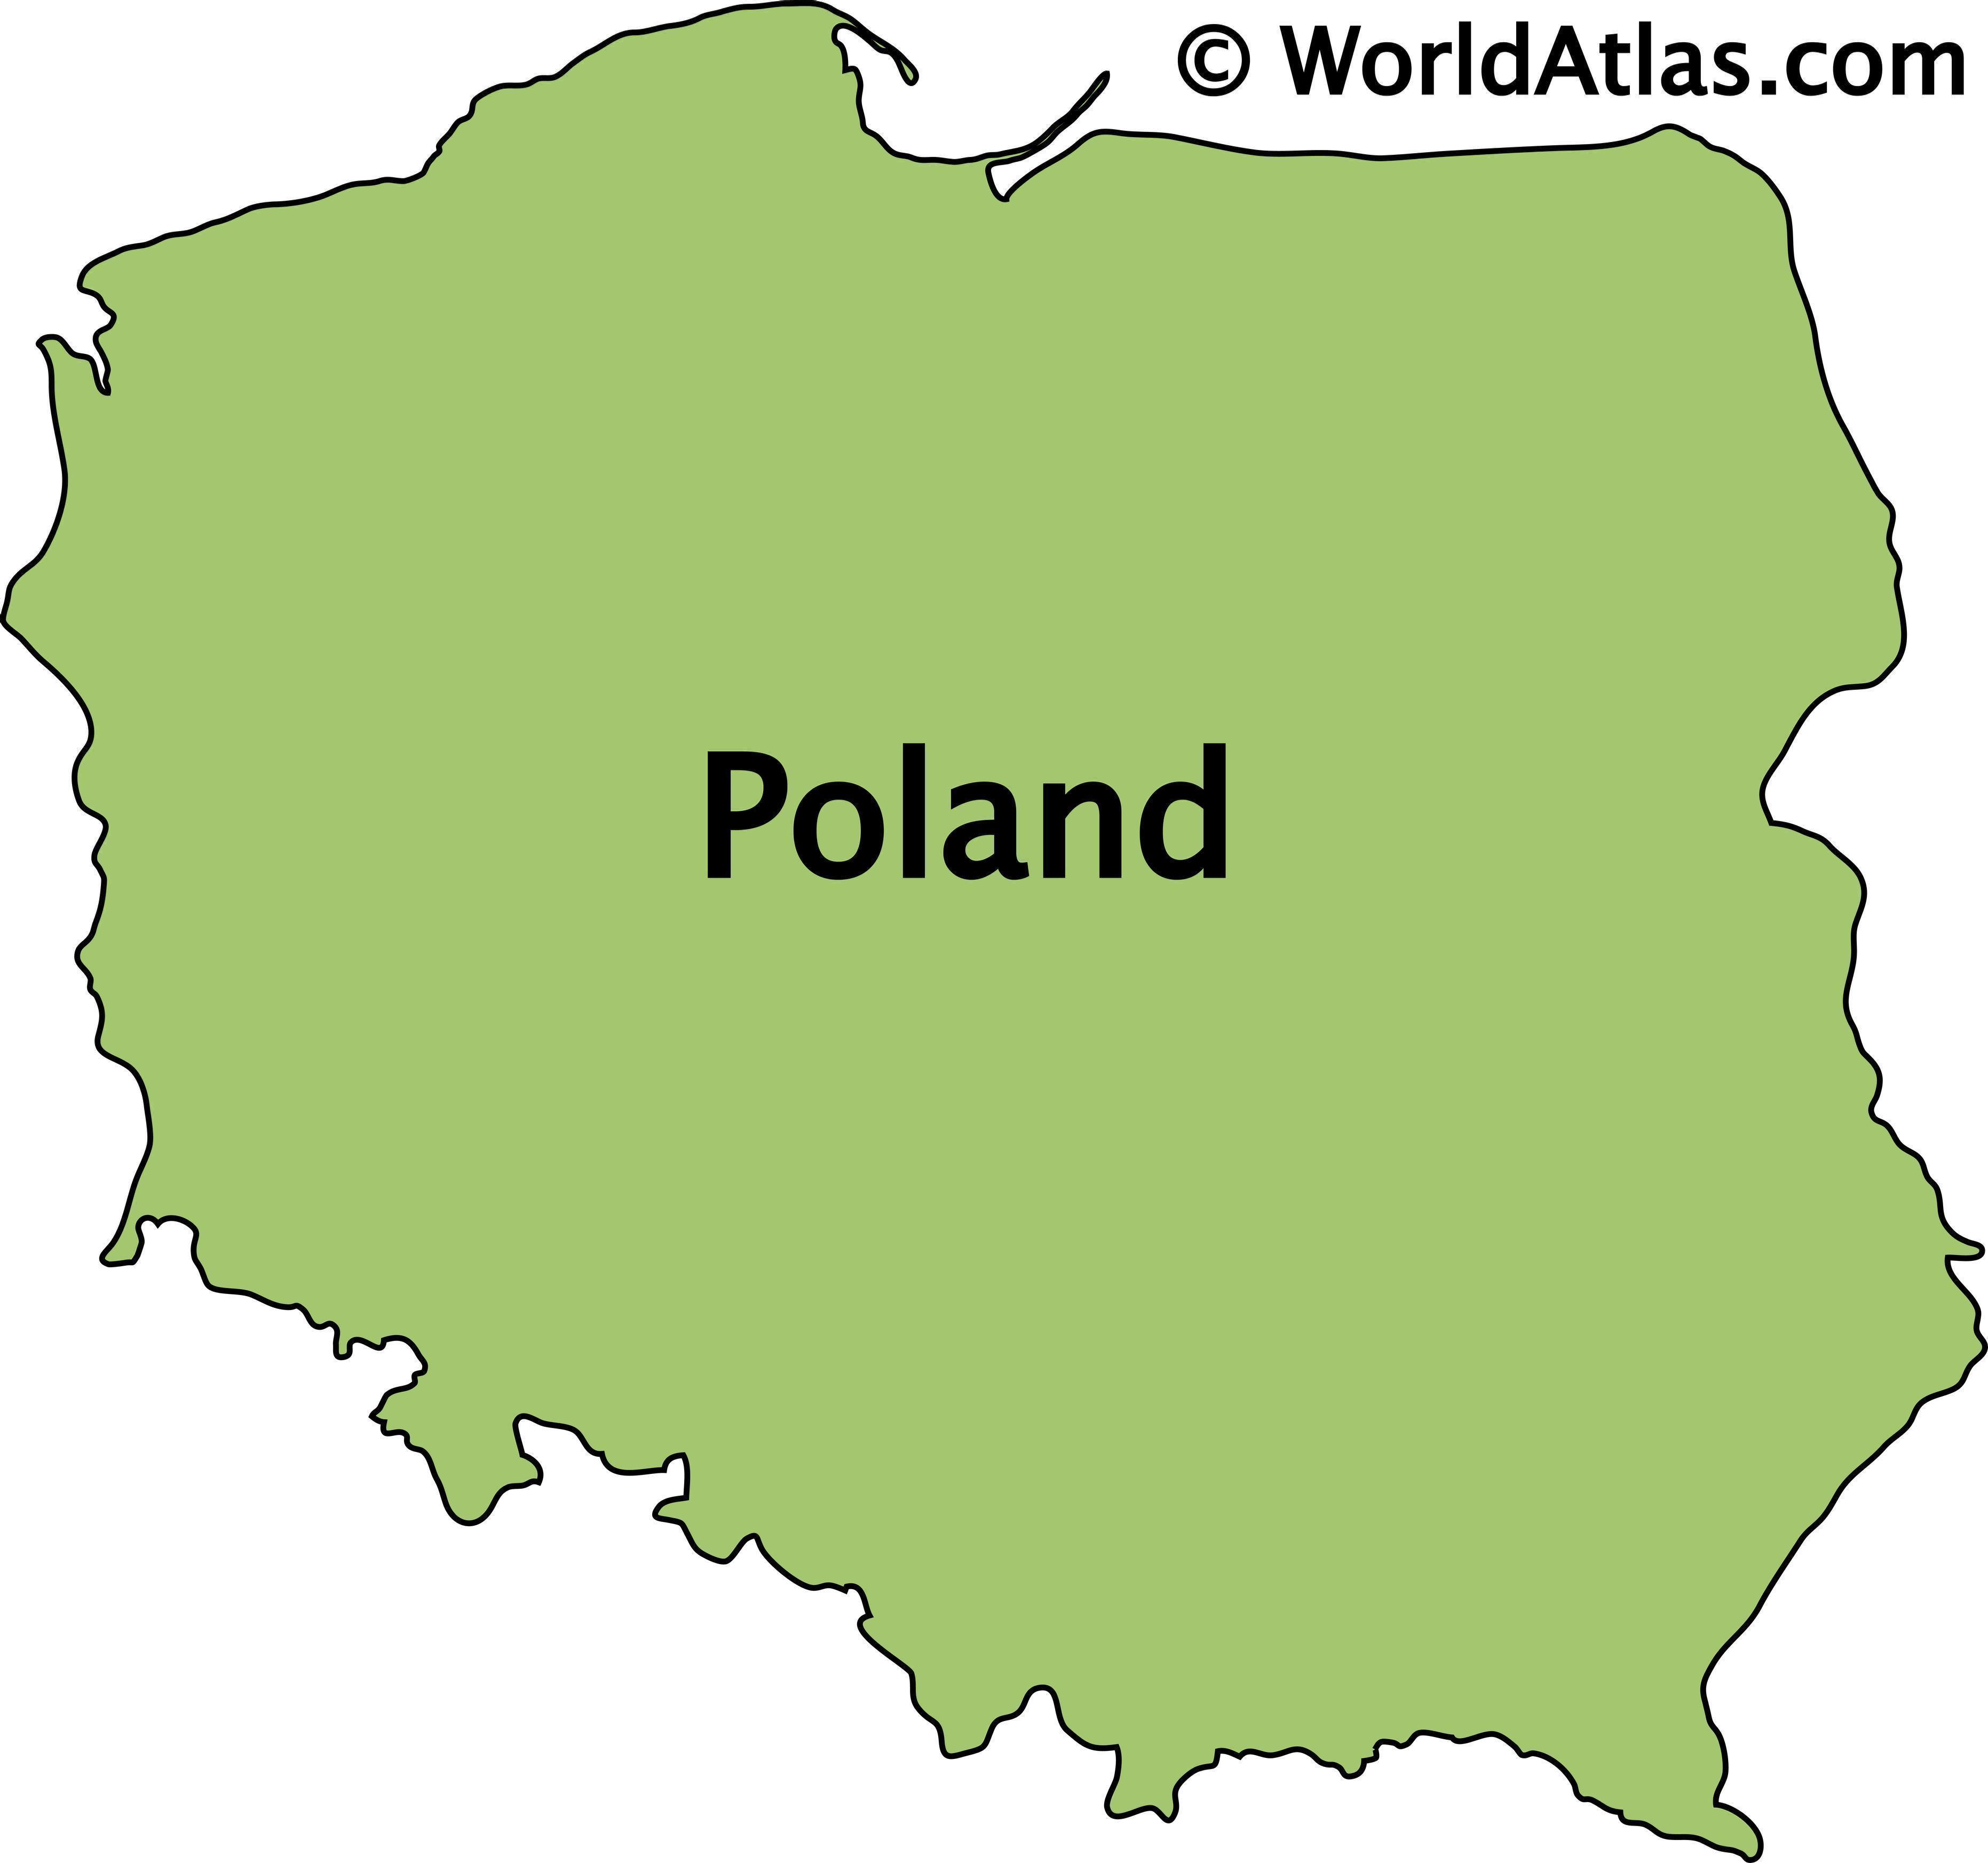 Outline Map of Poland